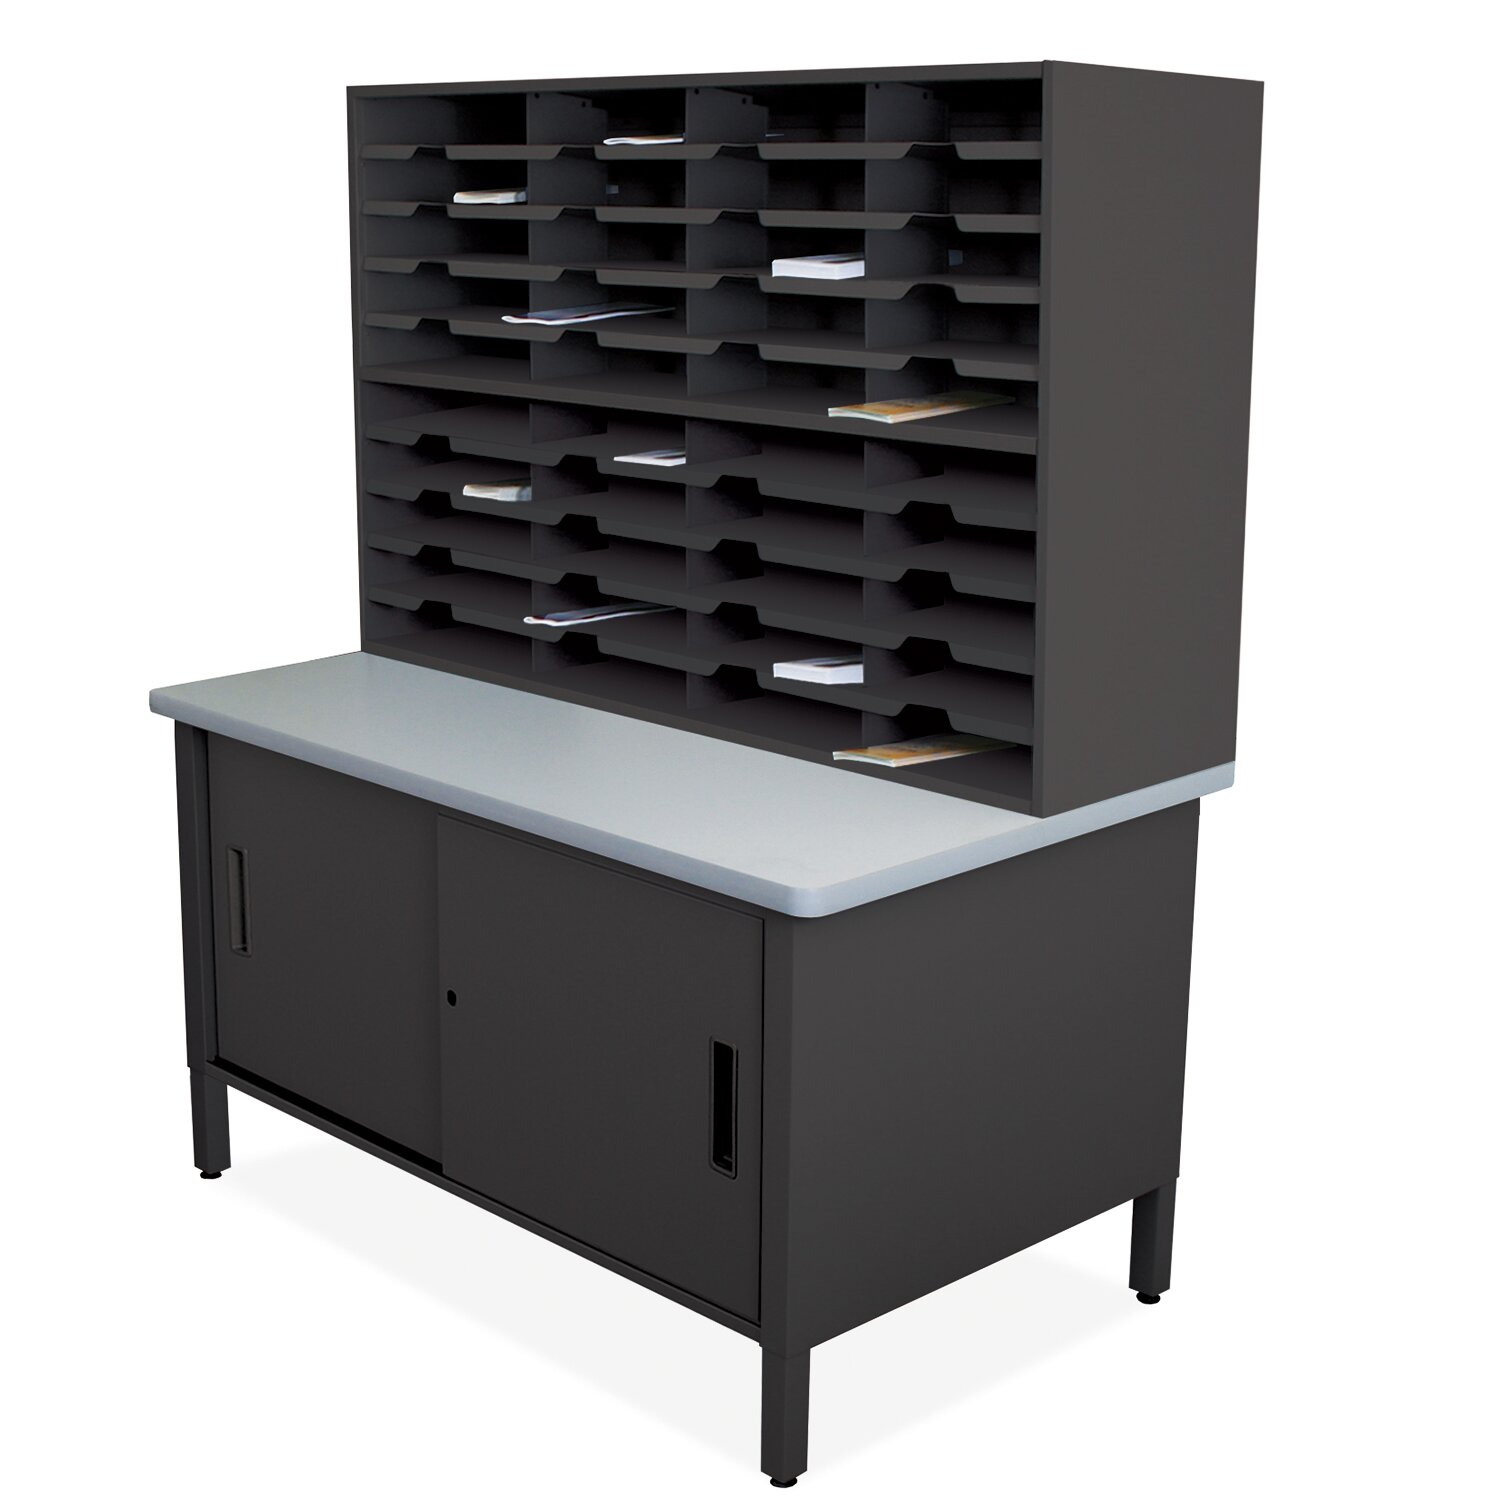 mailroom furniture images - reverse search